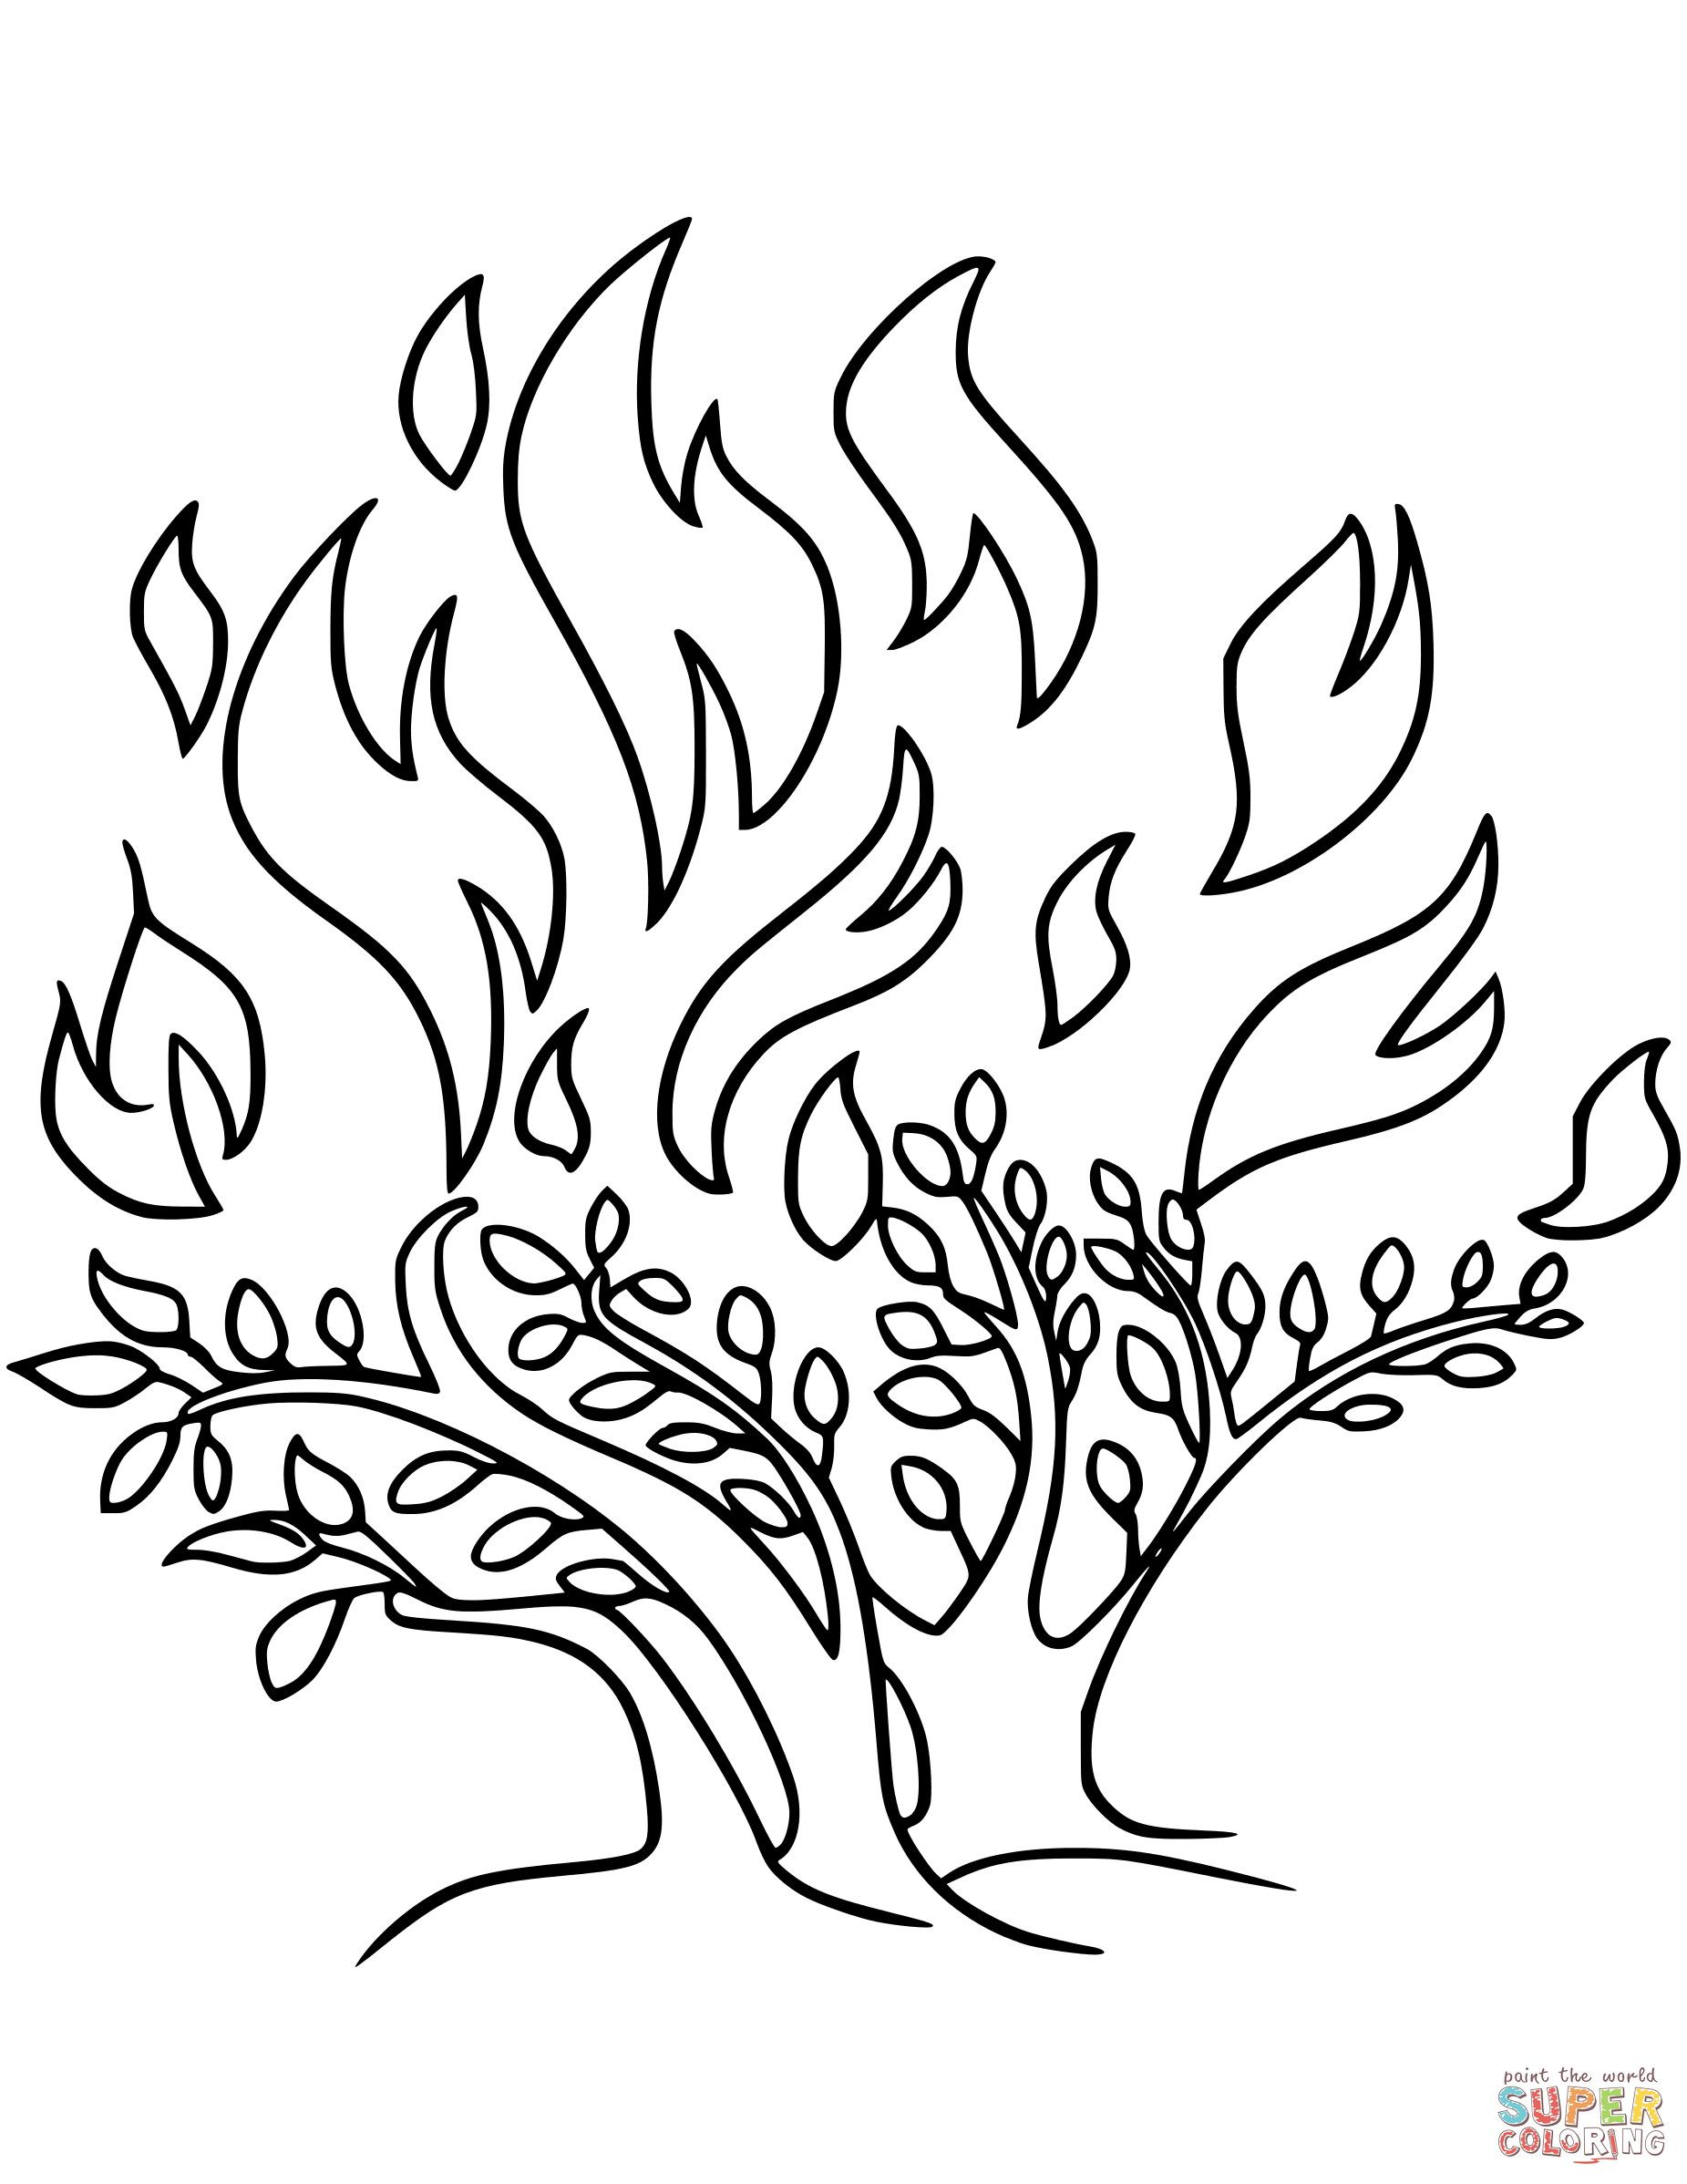 Moses and the Burning Bush Coloring Page Inspirational ...